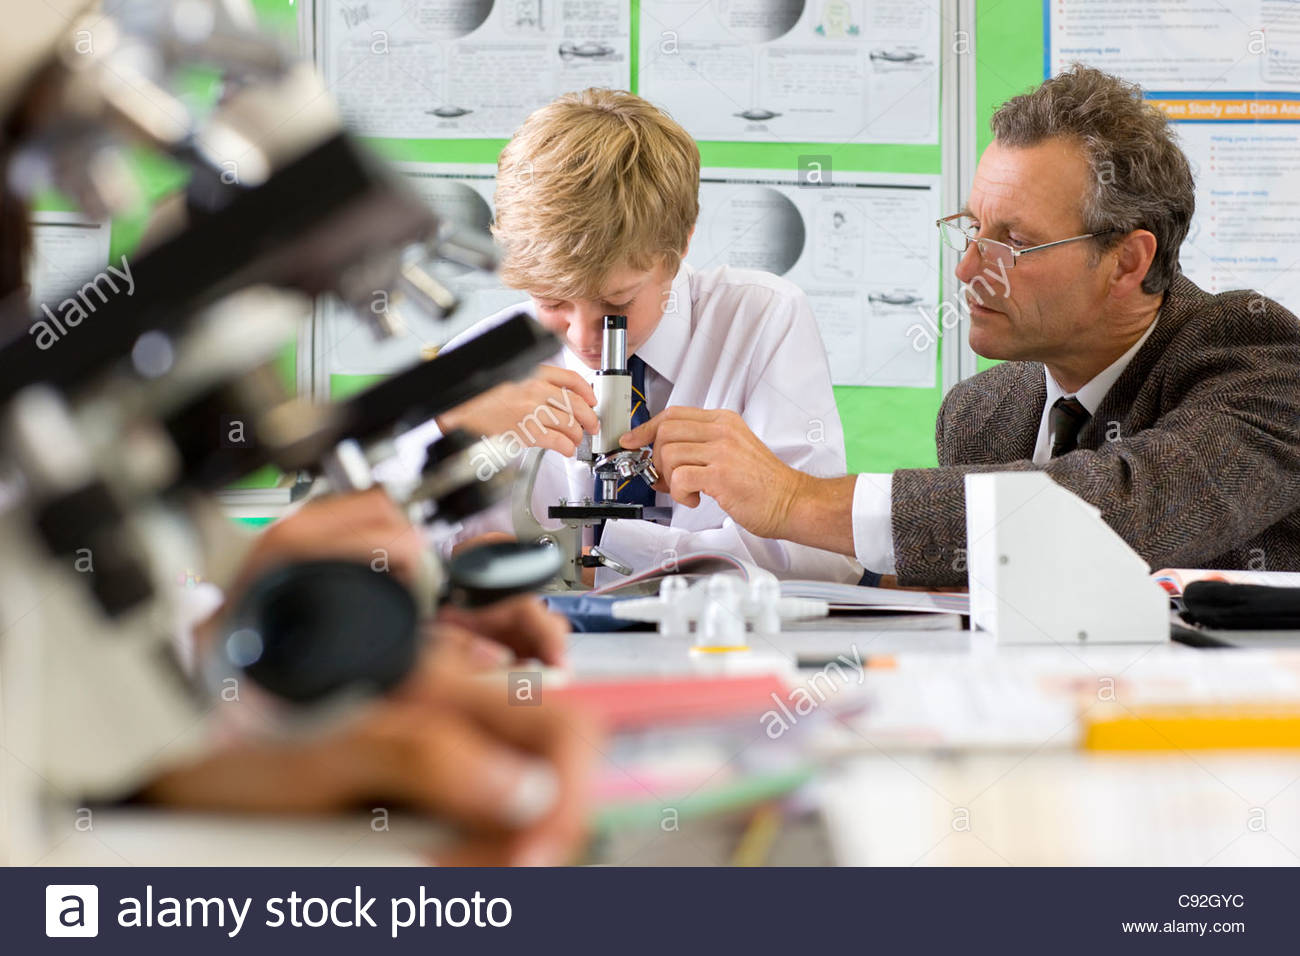 Student and teacher with microscope in science class - Stock Image